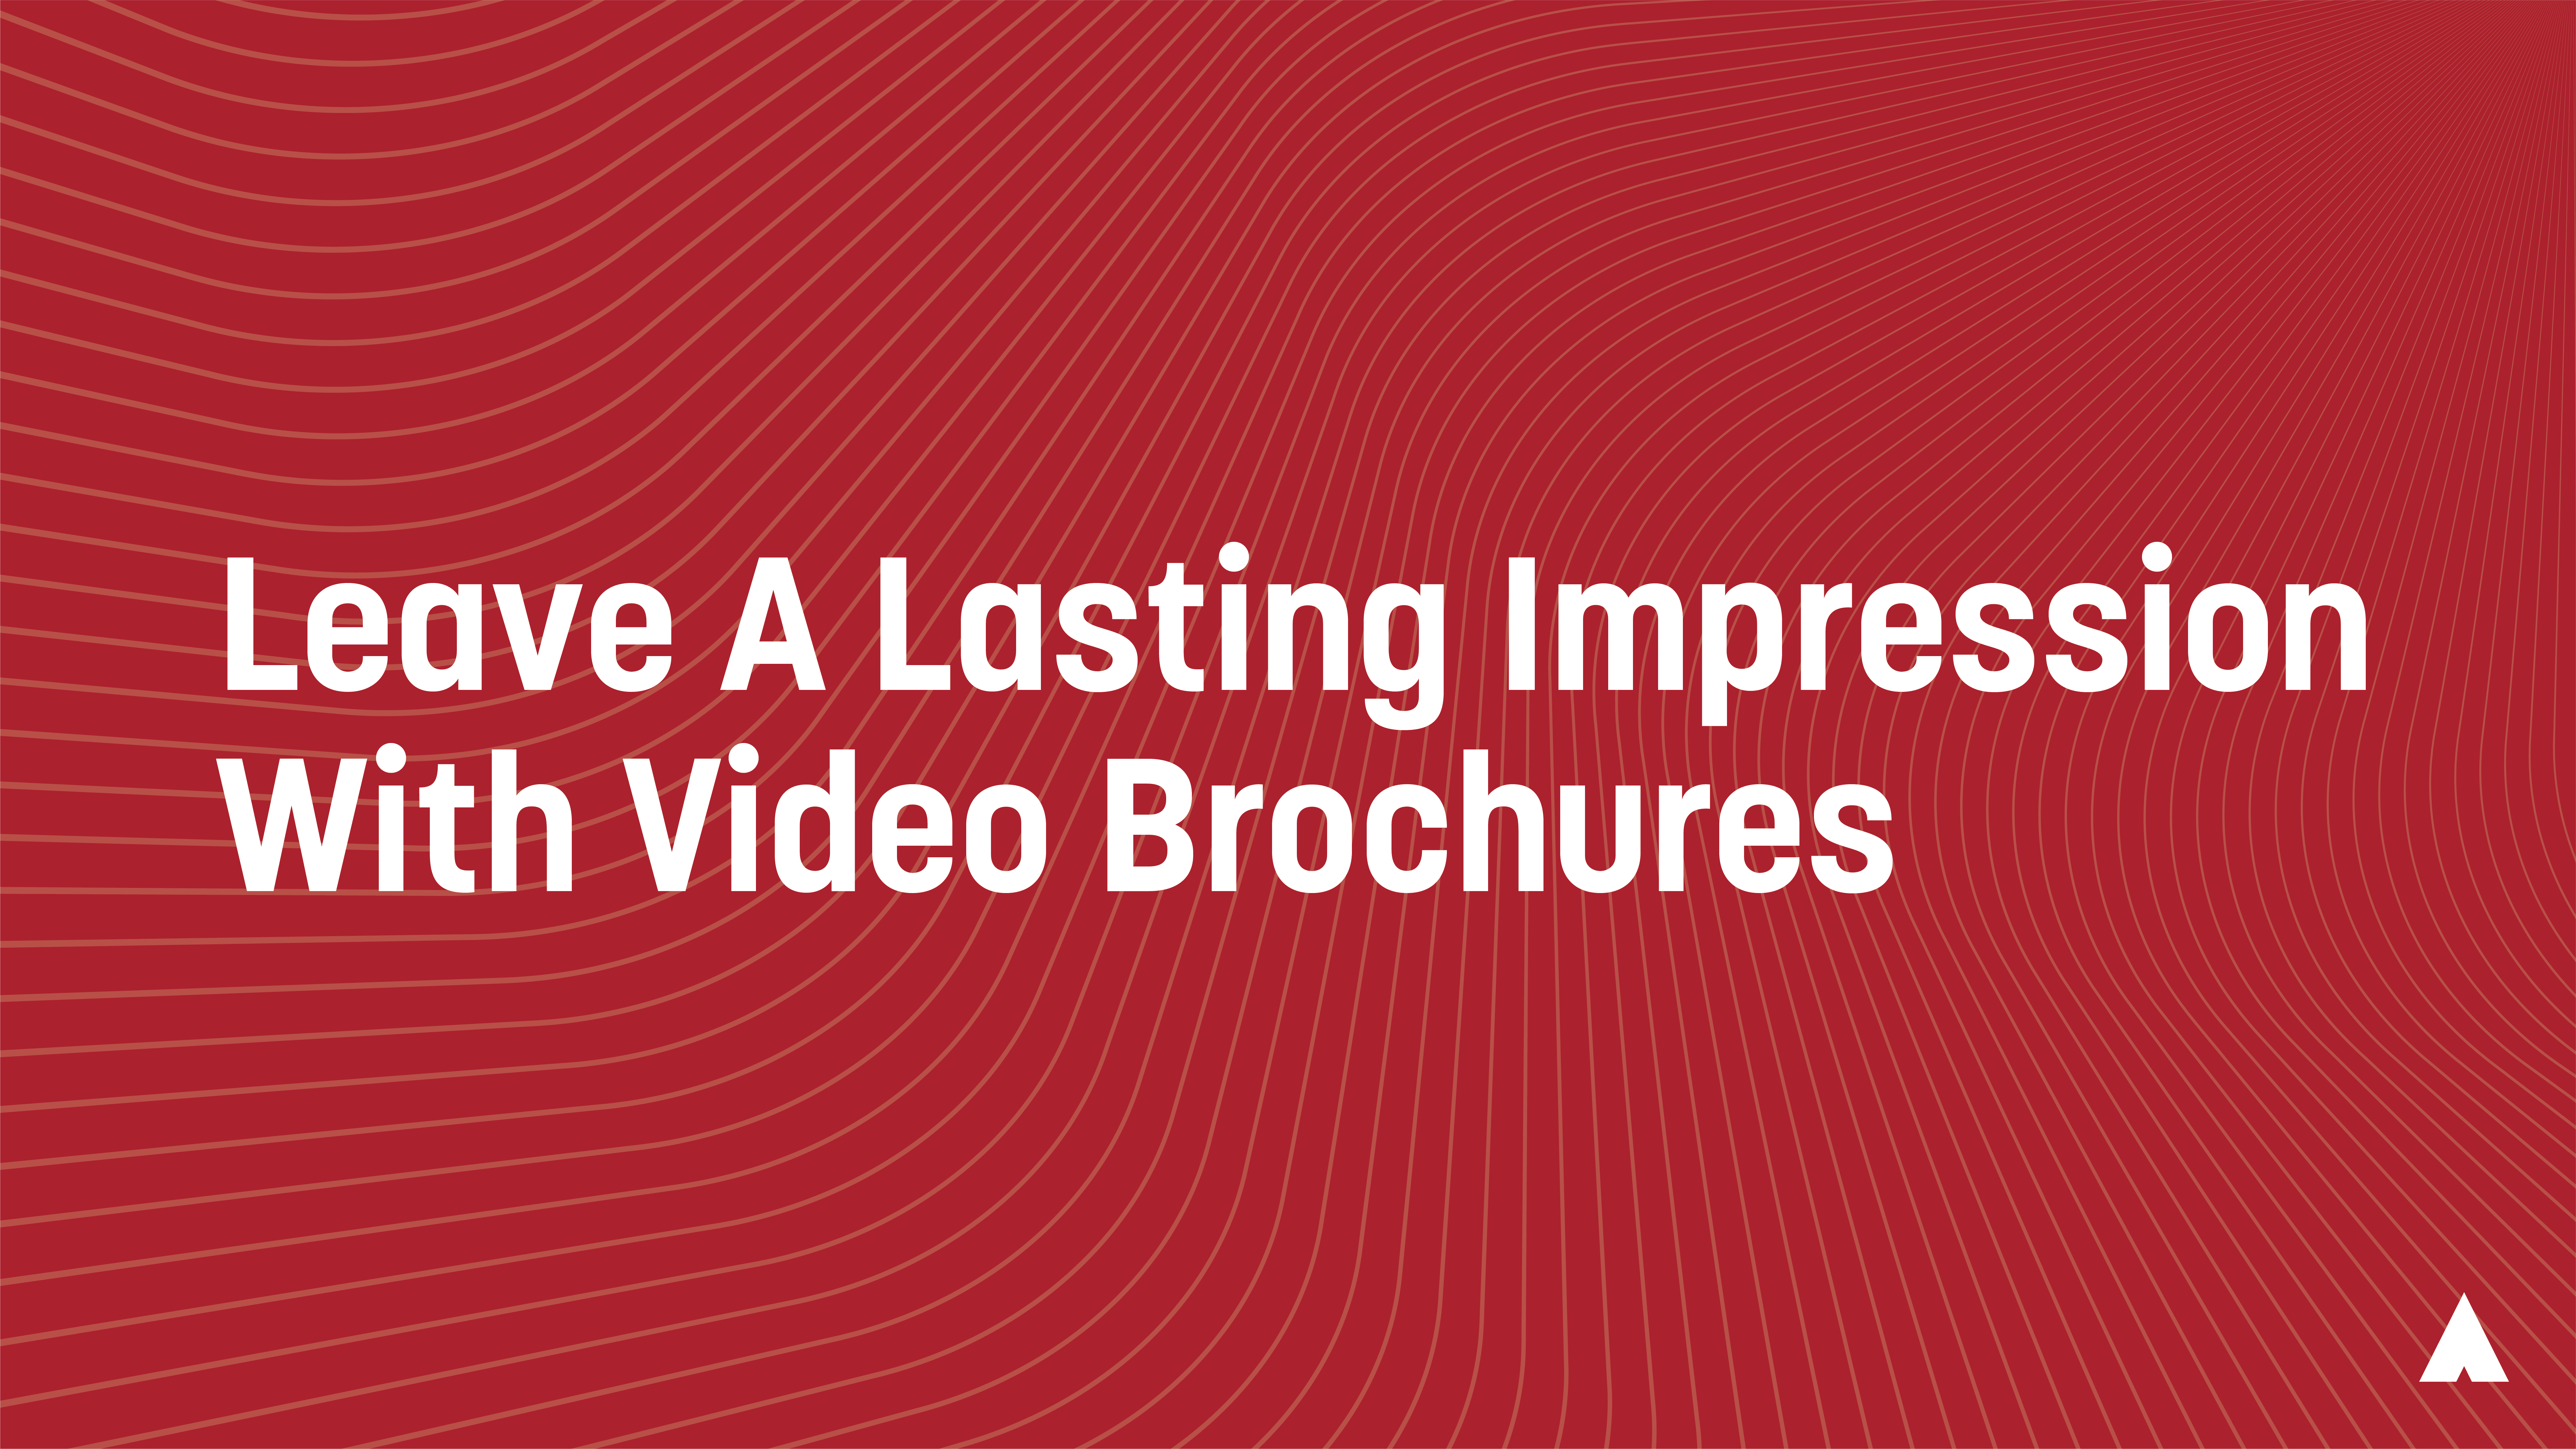 Leave A Lasting Impression With Video Brochures